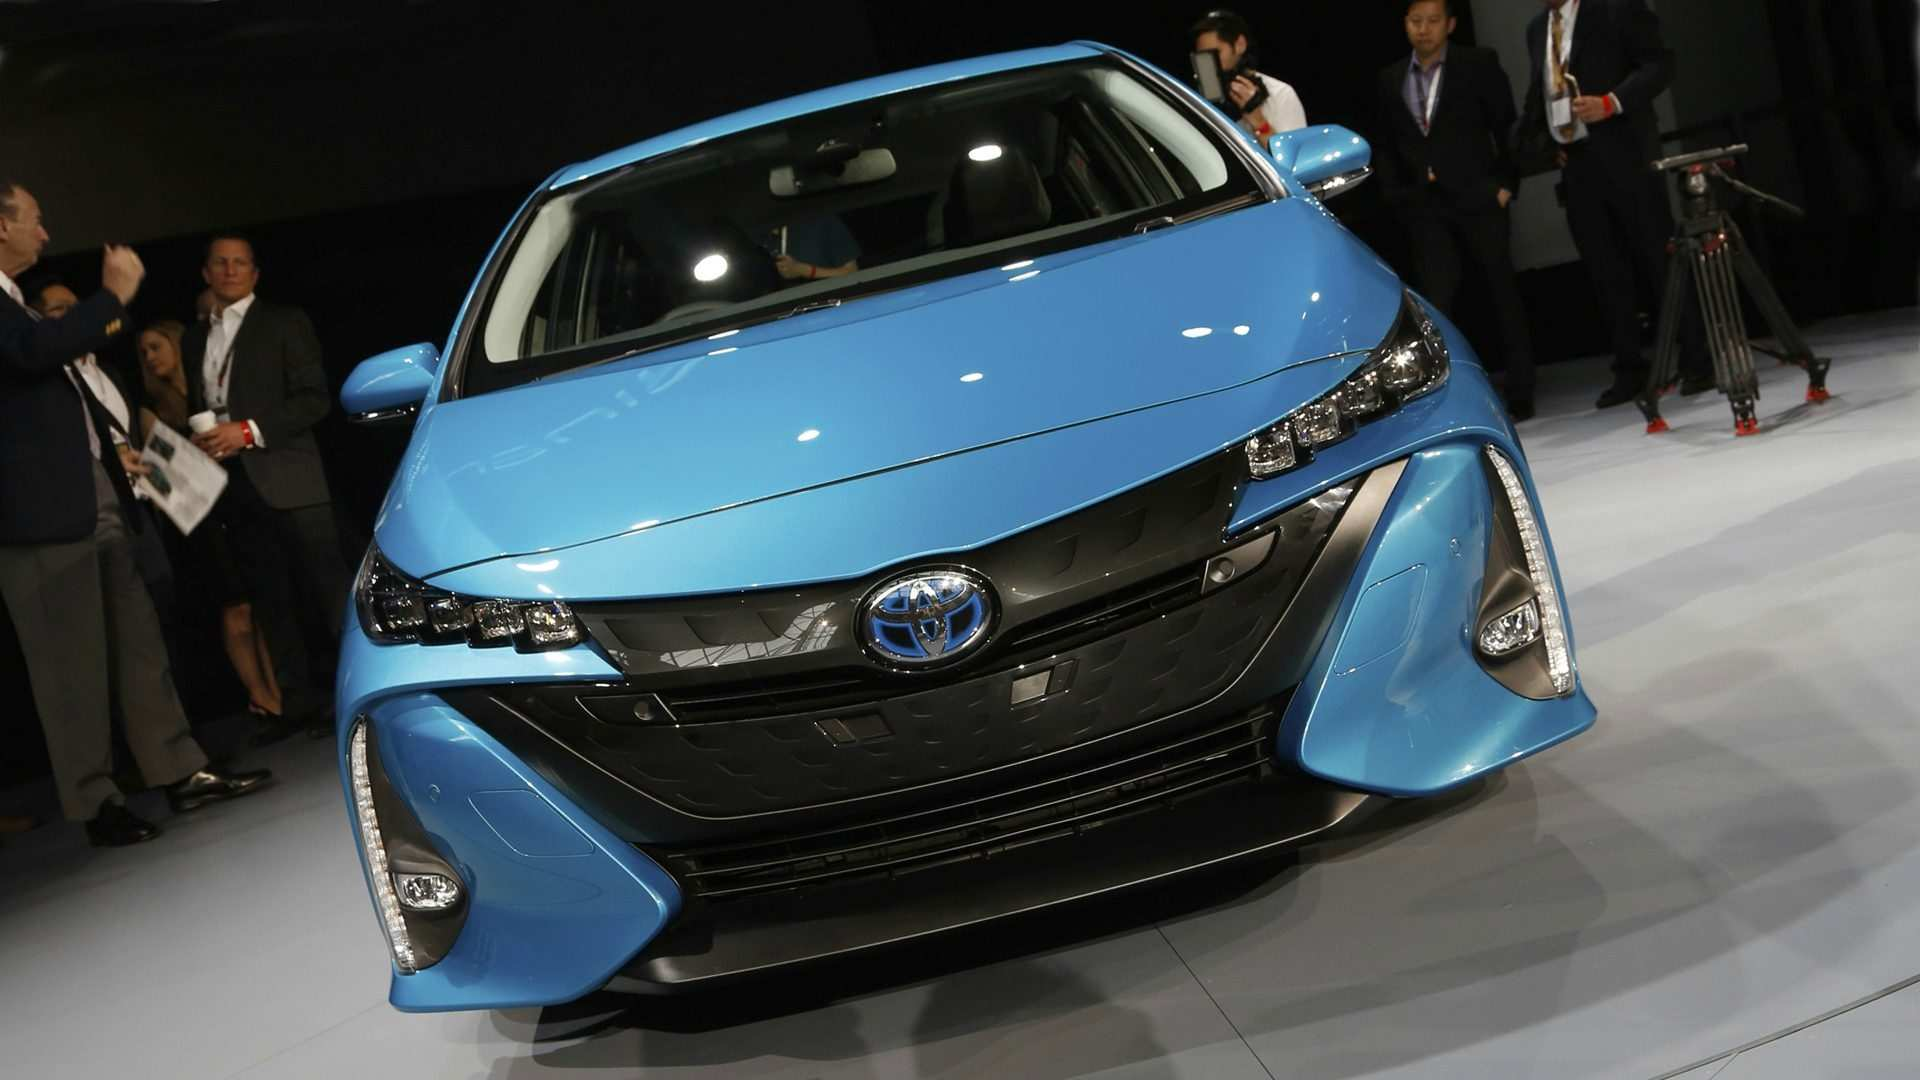 94 All New 2019 Toyota Prius Prime Release Date Release Date with 2019 Toyota Prius Prime Release Date